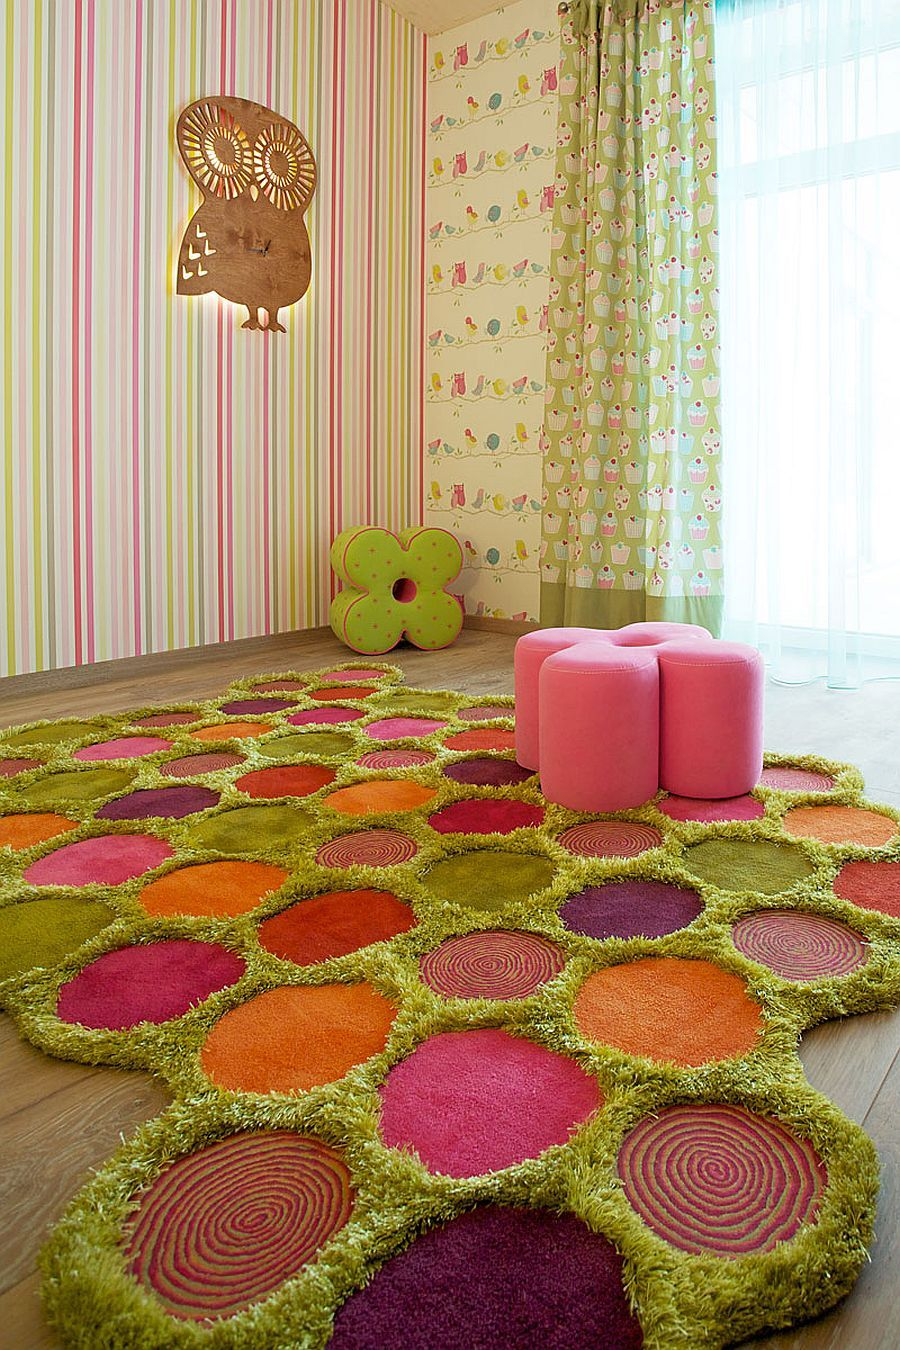 colorful zest 25 eye catching rug ideas for kids rooms area rugs rh pinterest com Area Rug Sizes for Living Room Great Room Rugs